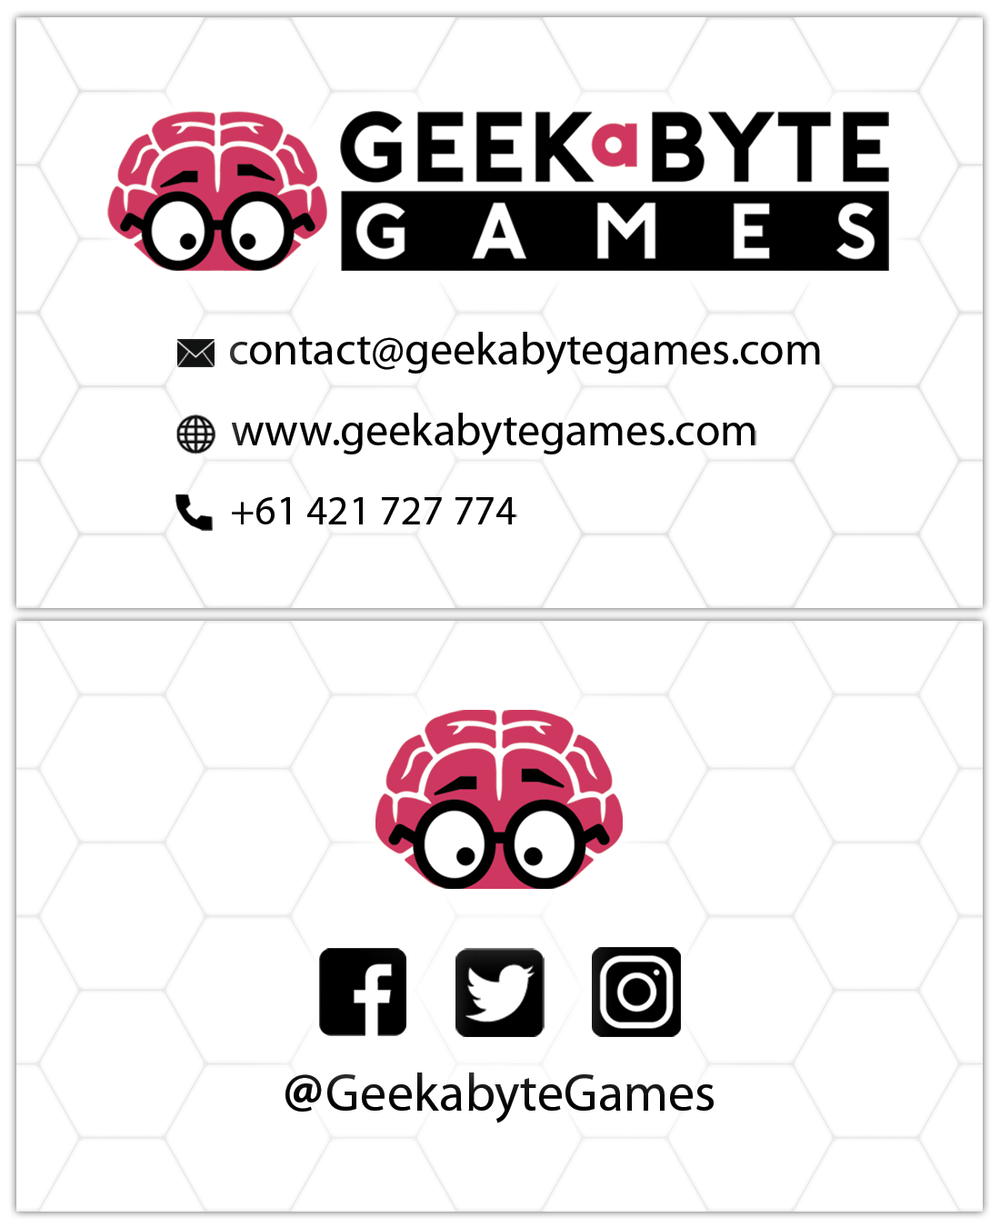 Geekabyte Games business card